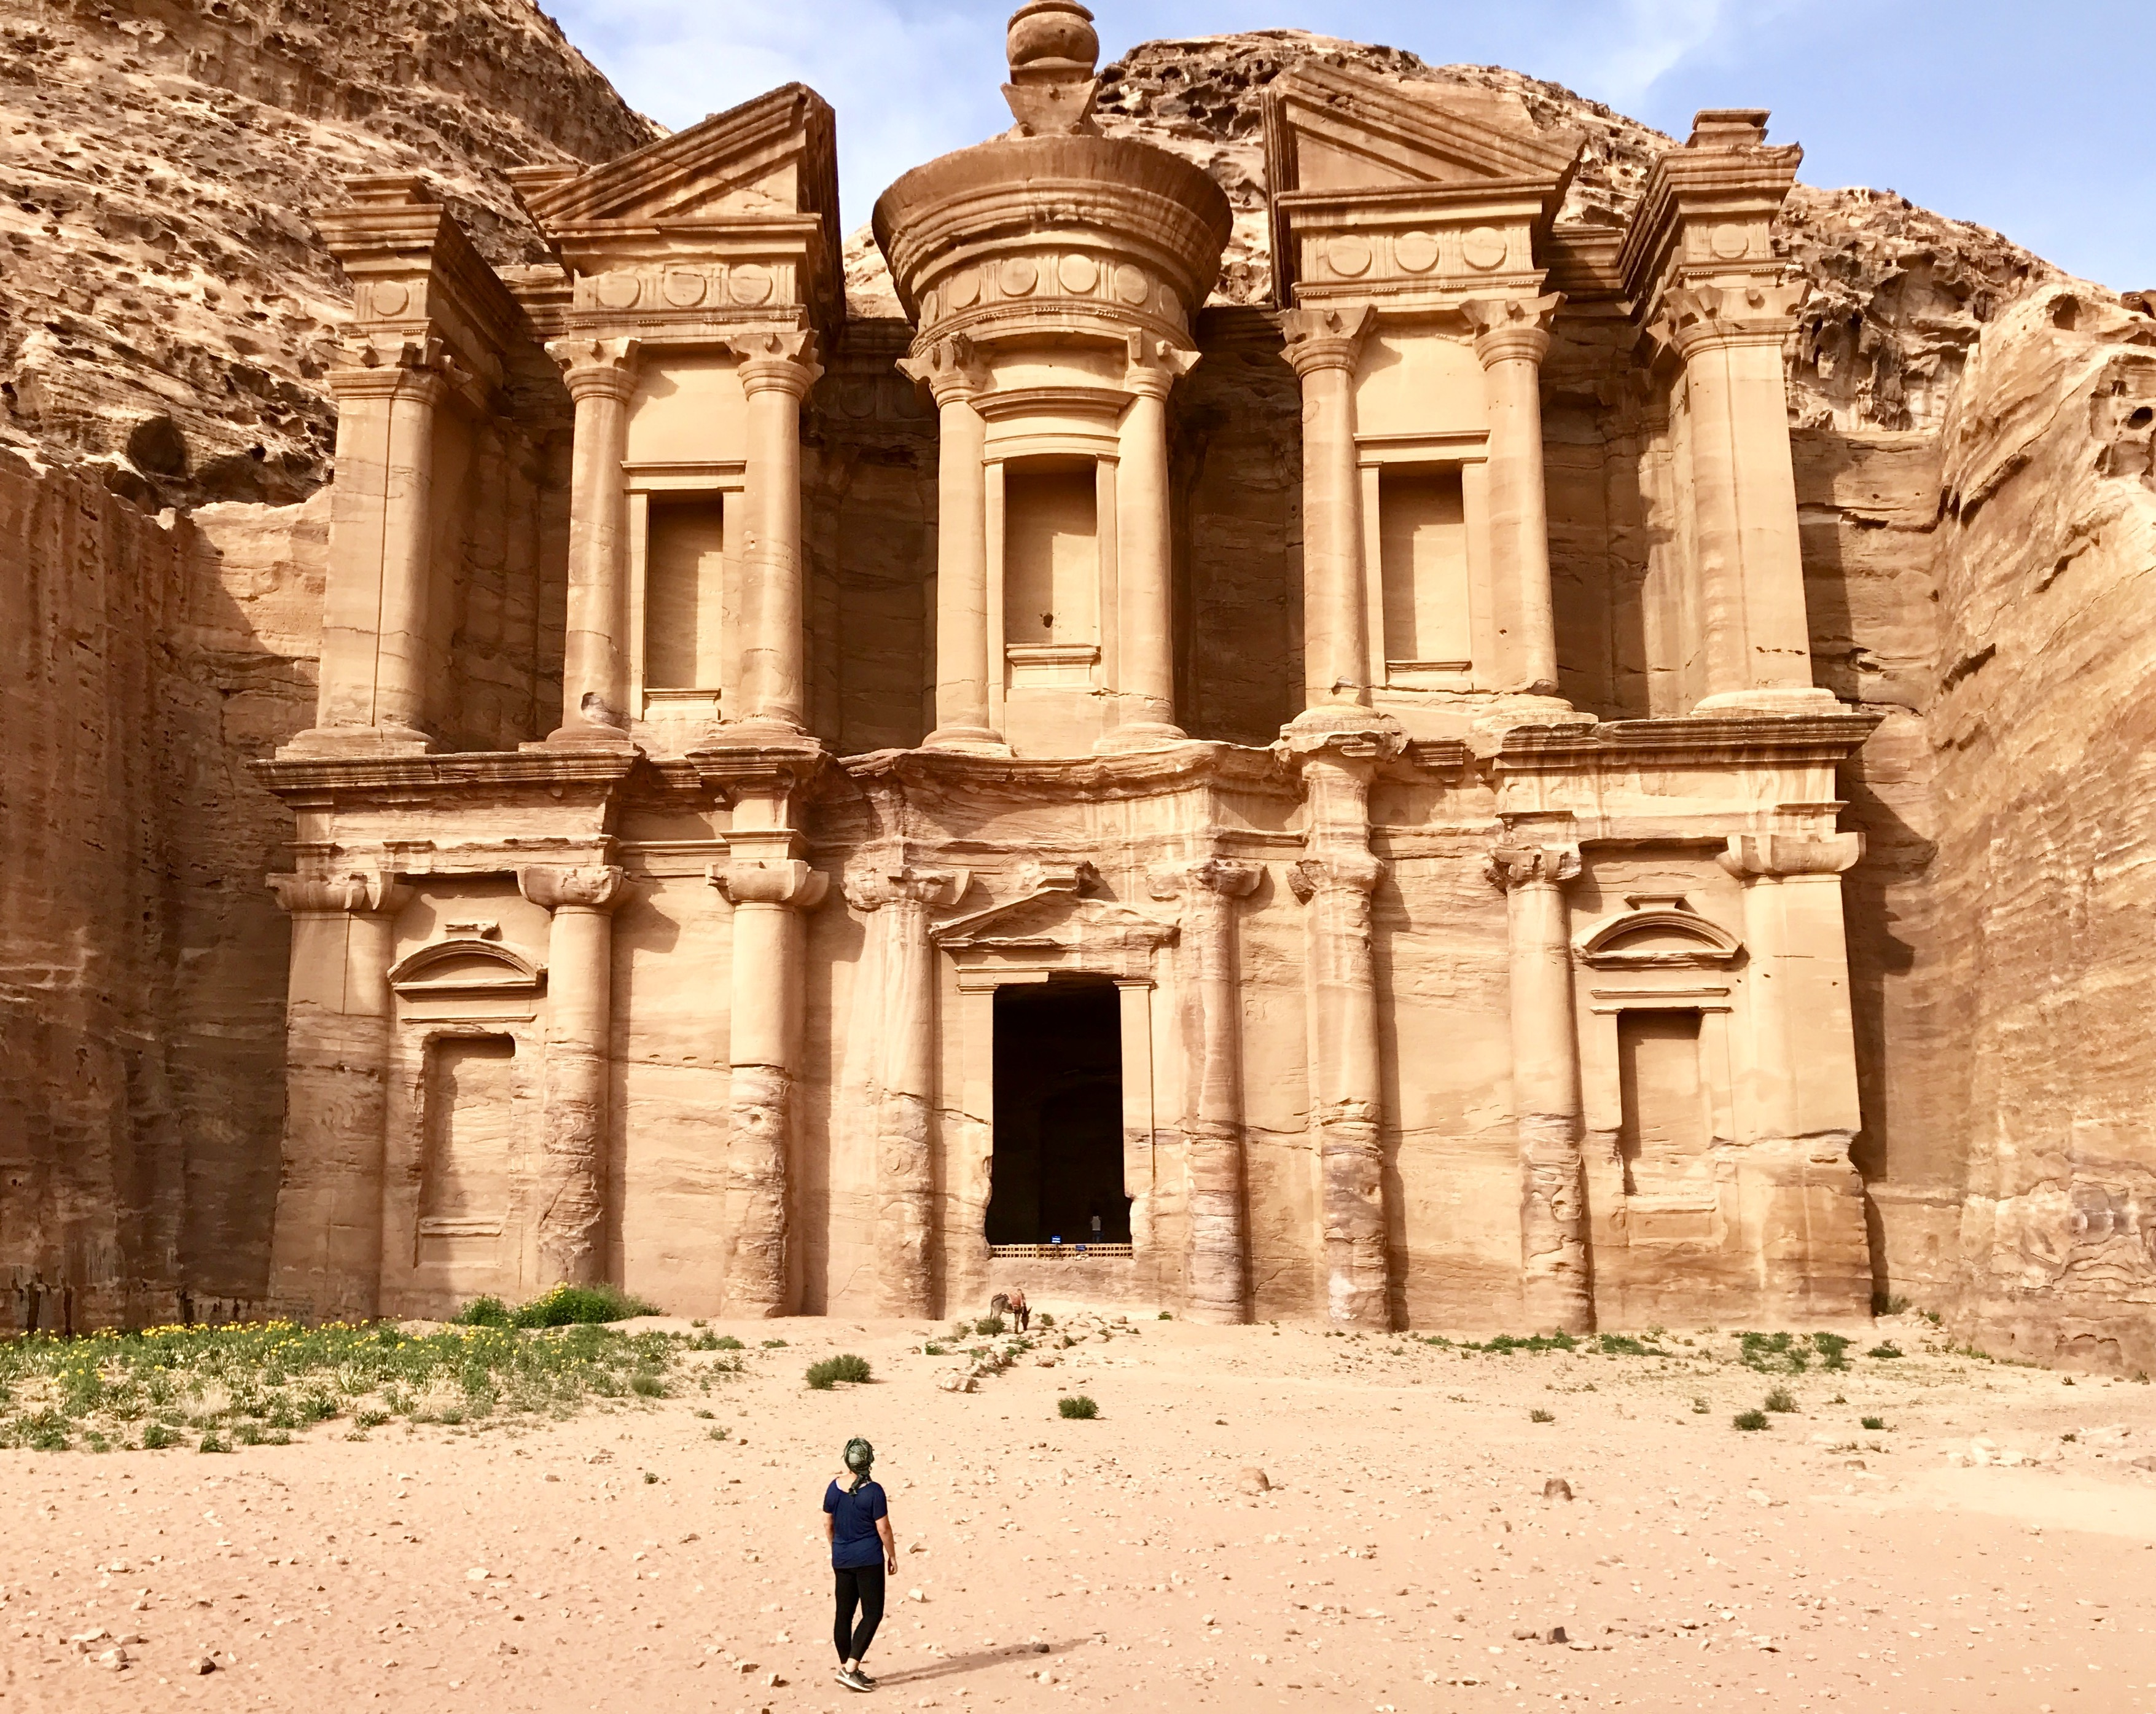 Petra's Monastery | It's unclear whether Petra is directly referenced in the bible, but it's likely and this area features heavily given its place in the Promised Land